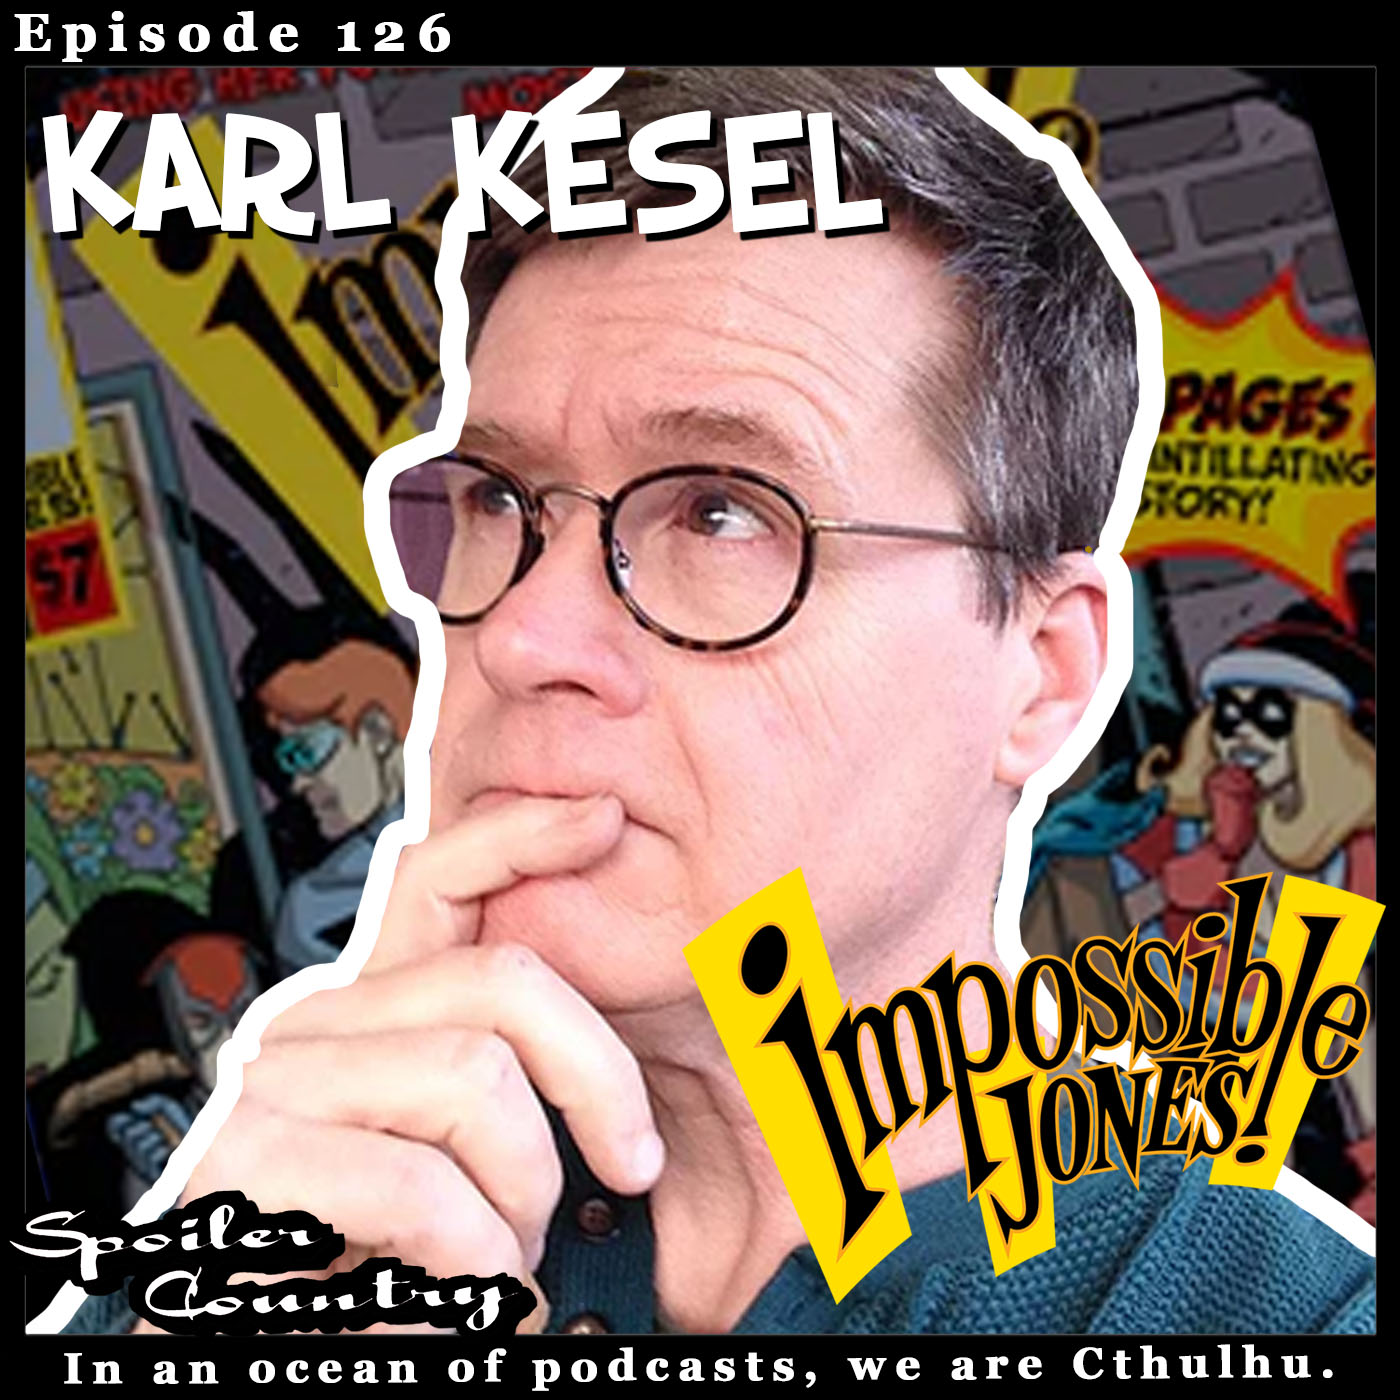 Karl Kesel and Impossible Jones!